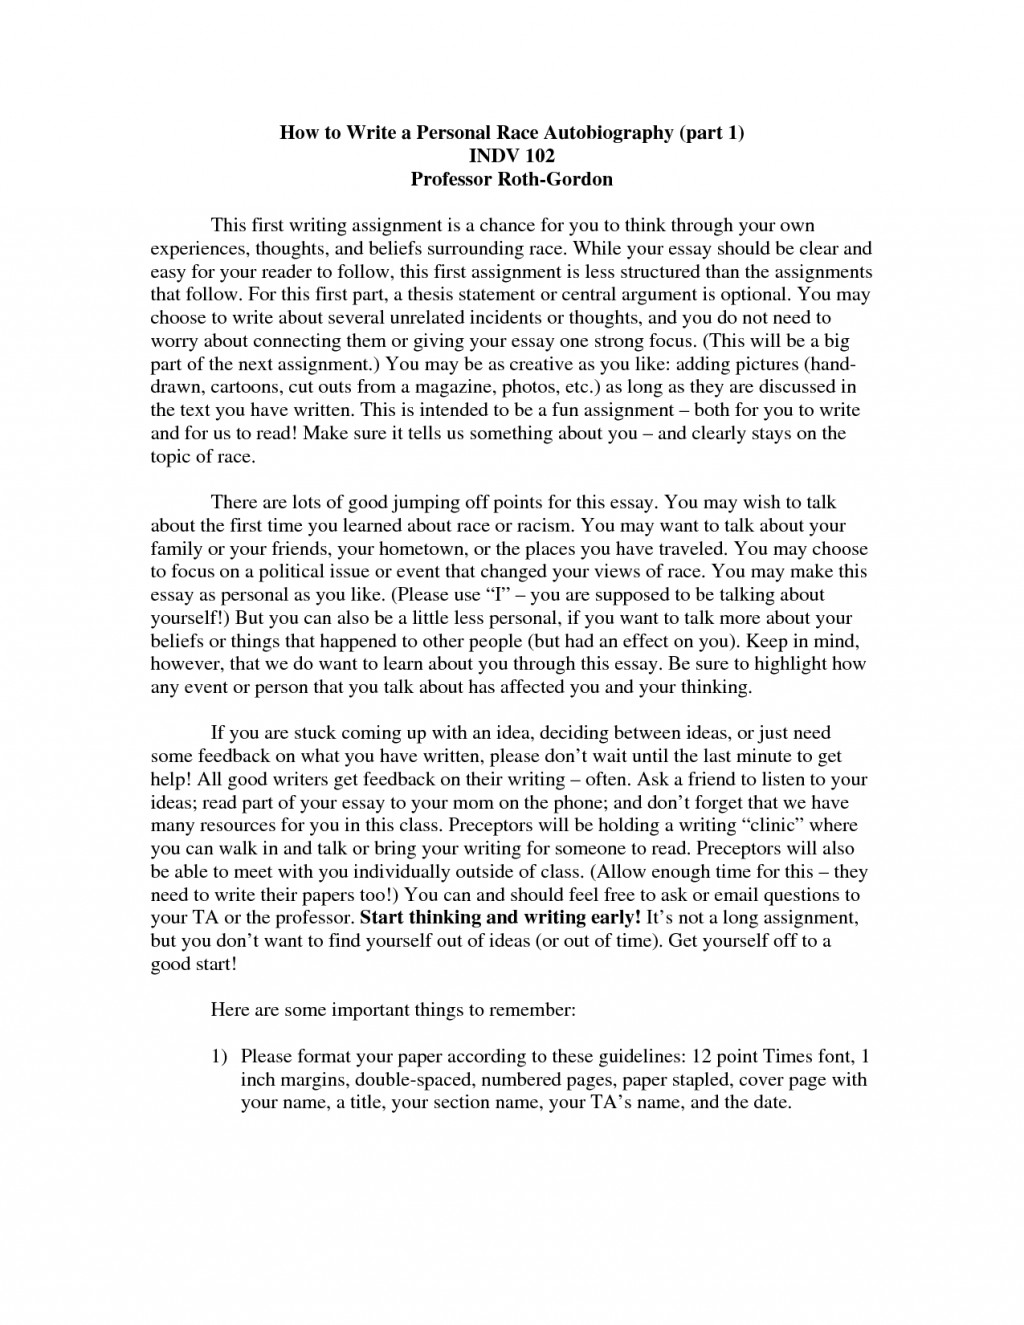 020 Essay Example Autobiography Best Photos Of Personal Narrative An Autobiographical How To Write Writing Outline For Scholarship College Admissions Unique About Yourself Tagalog Bio Students Large